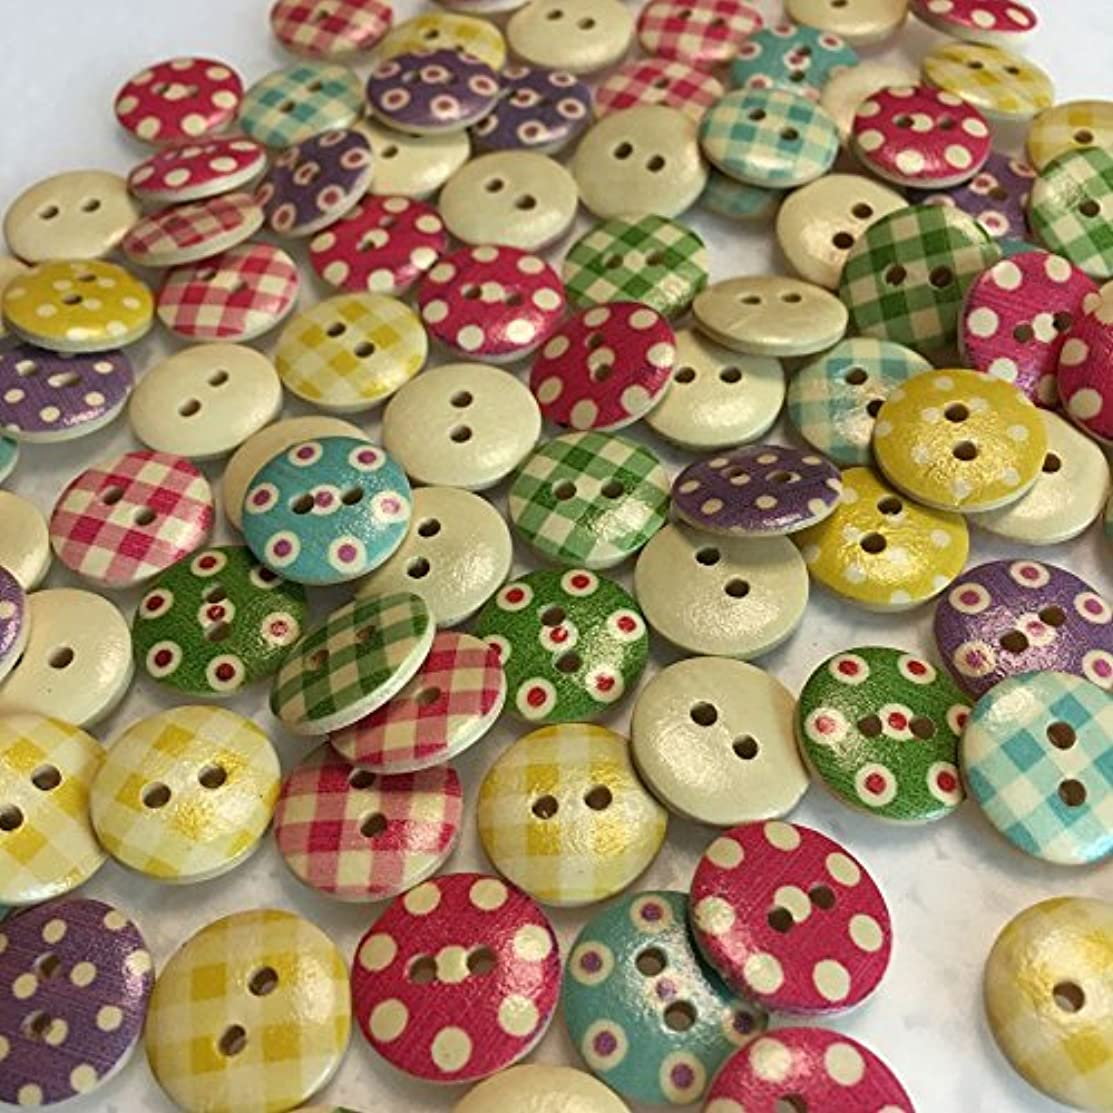 MySweetCastle 100pcs Mixed Wooden Button in Bulk Button for Crafts Button Round Colorful Painting Buttons 15mm